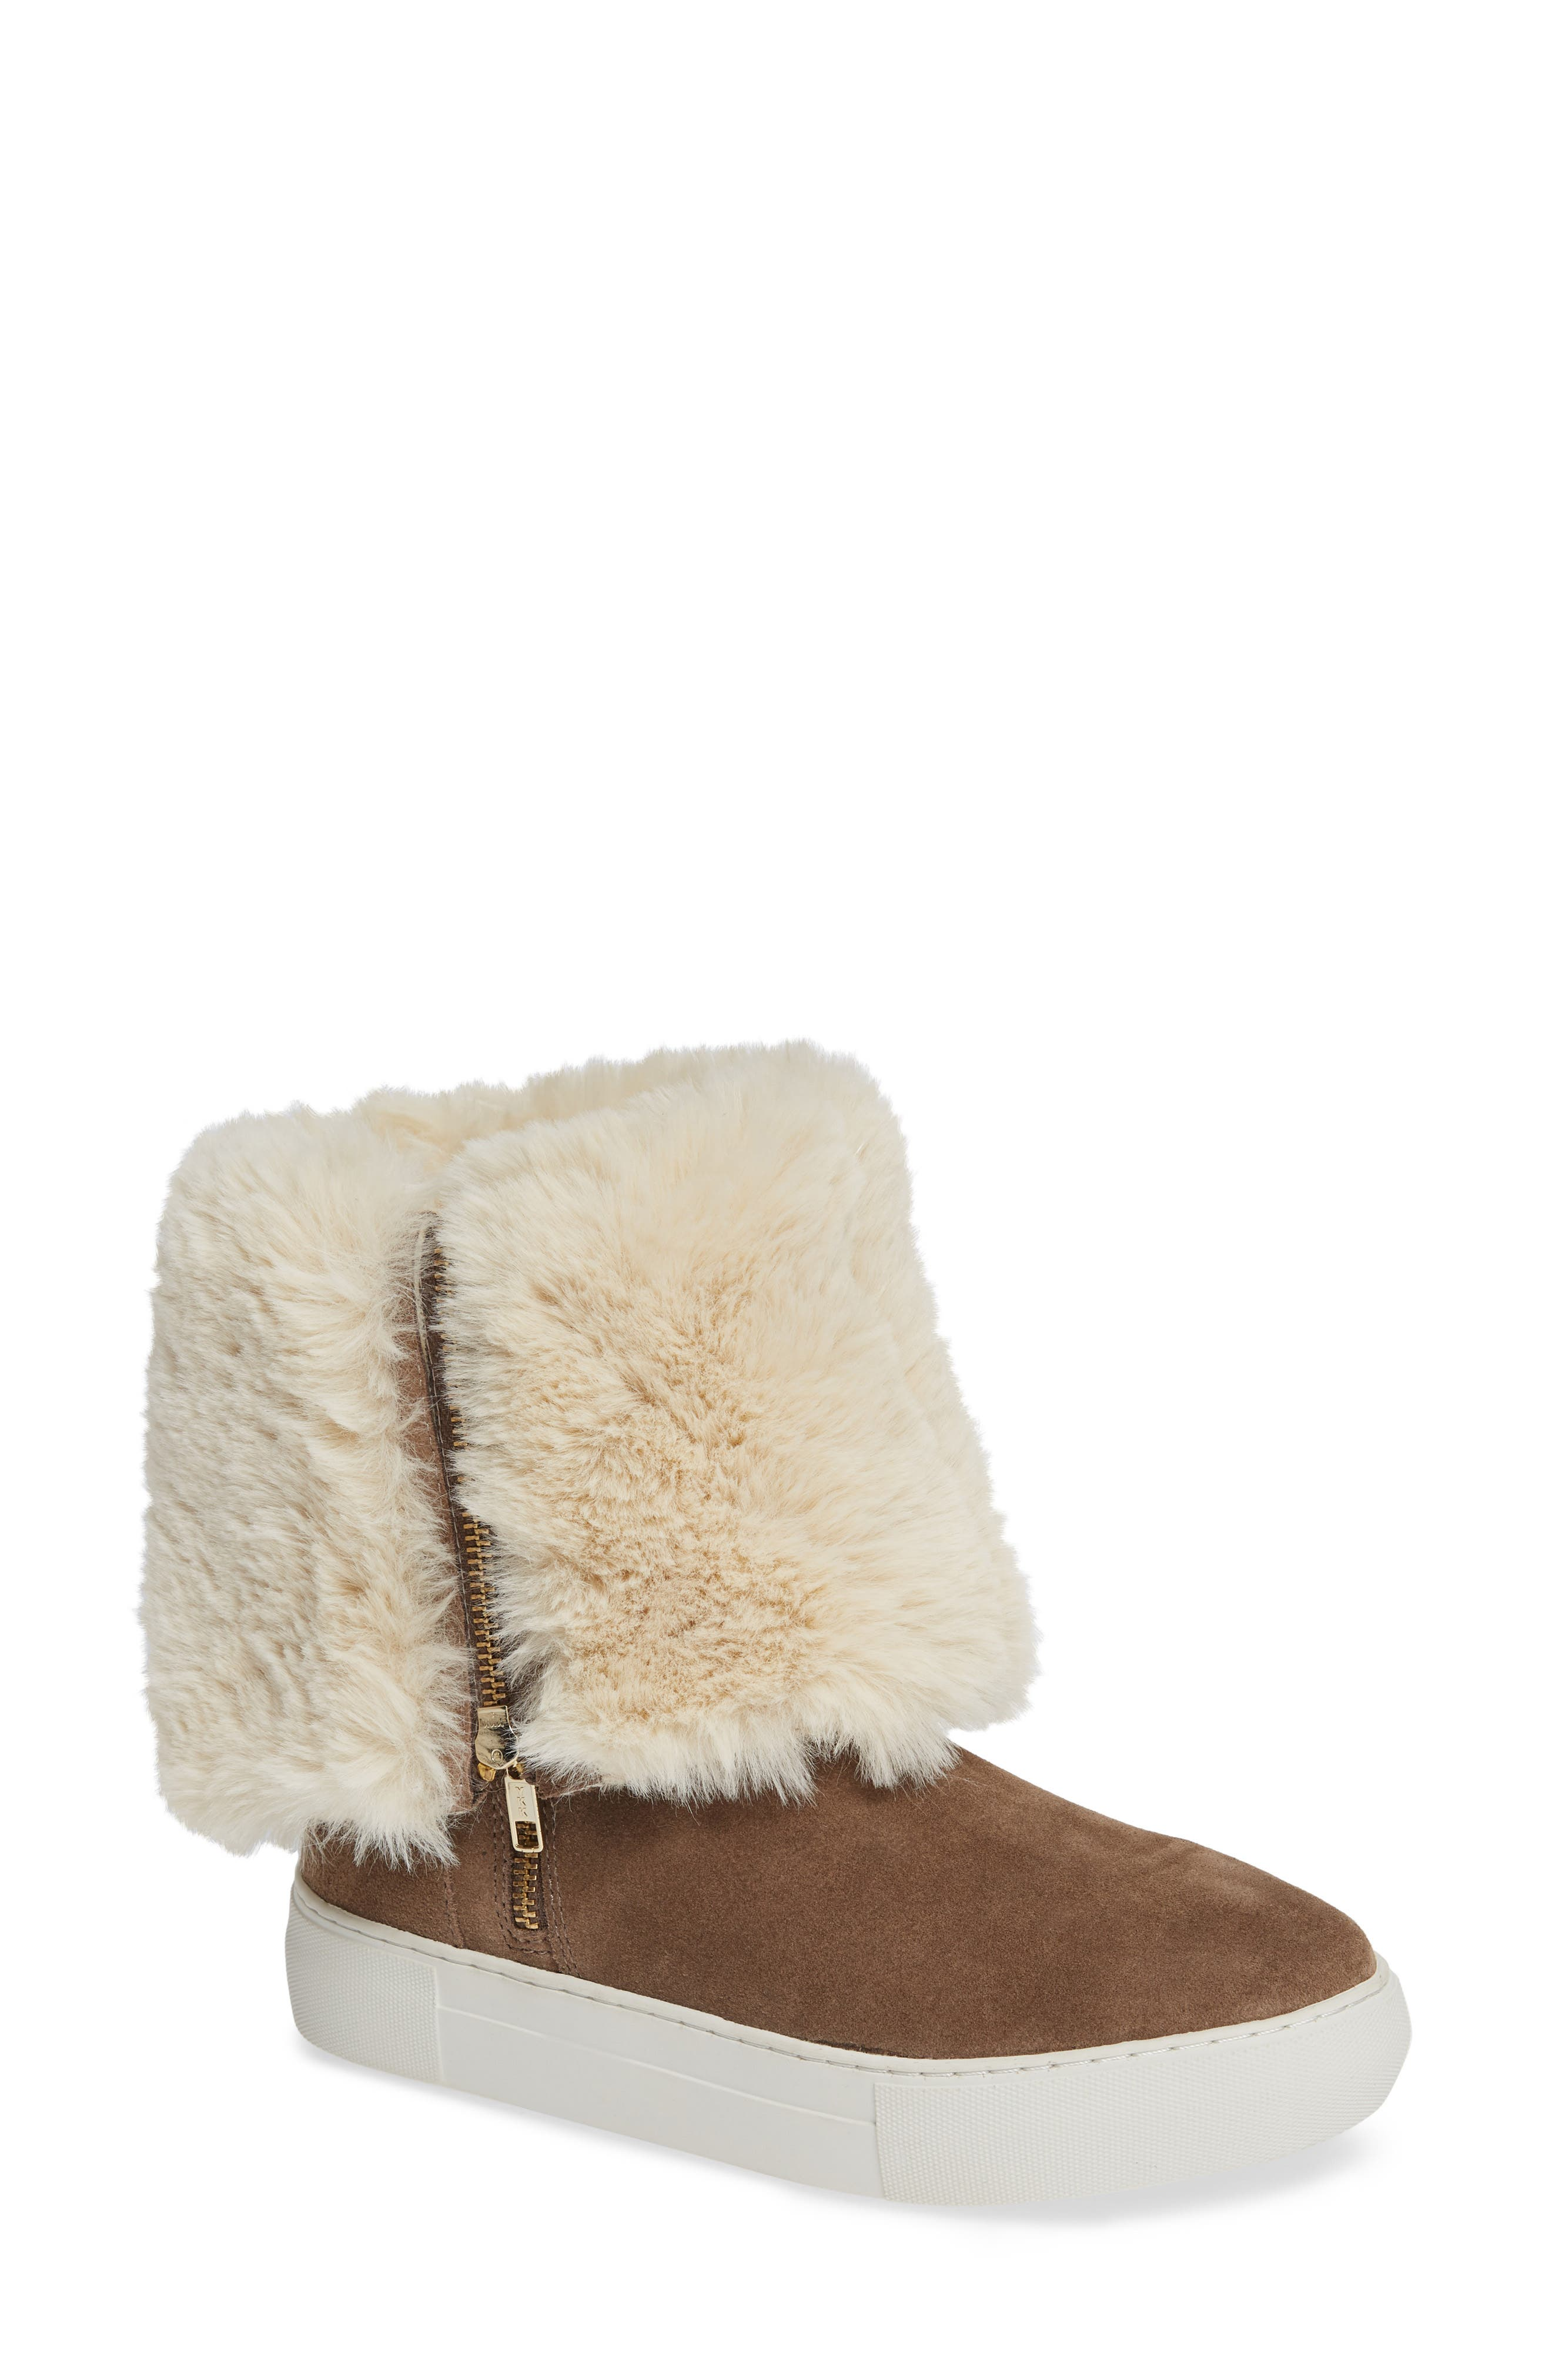 Jslides Apple Faux Shearling Boot, Brown